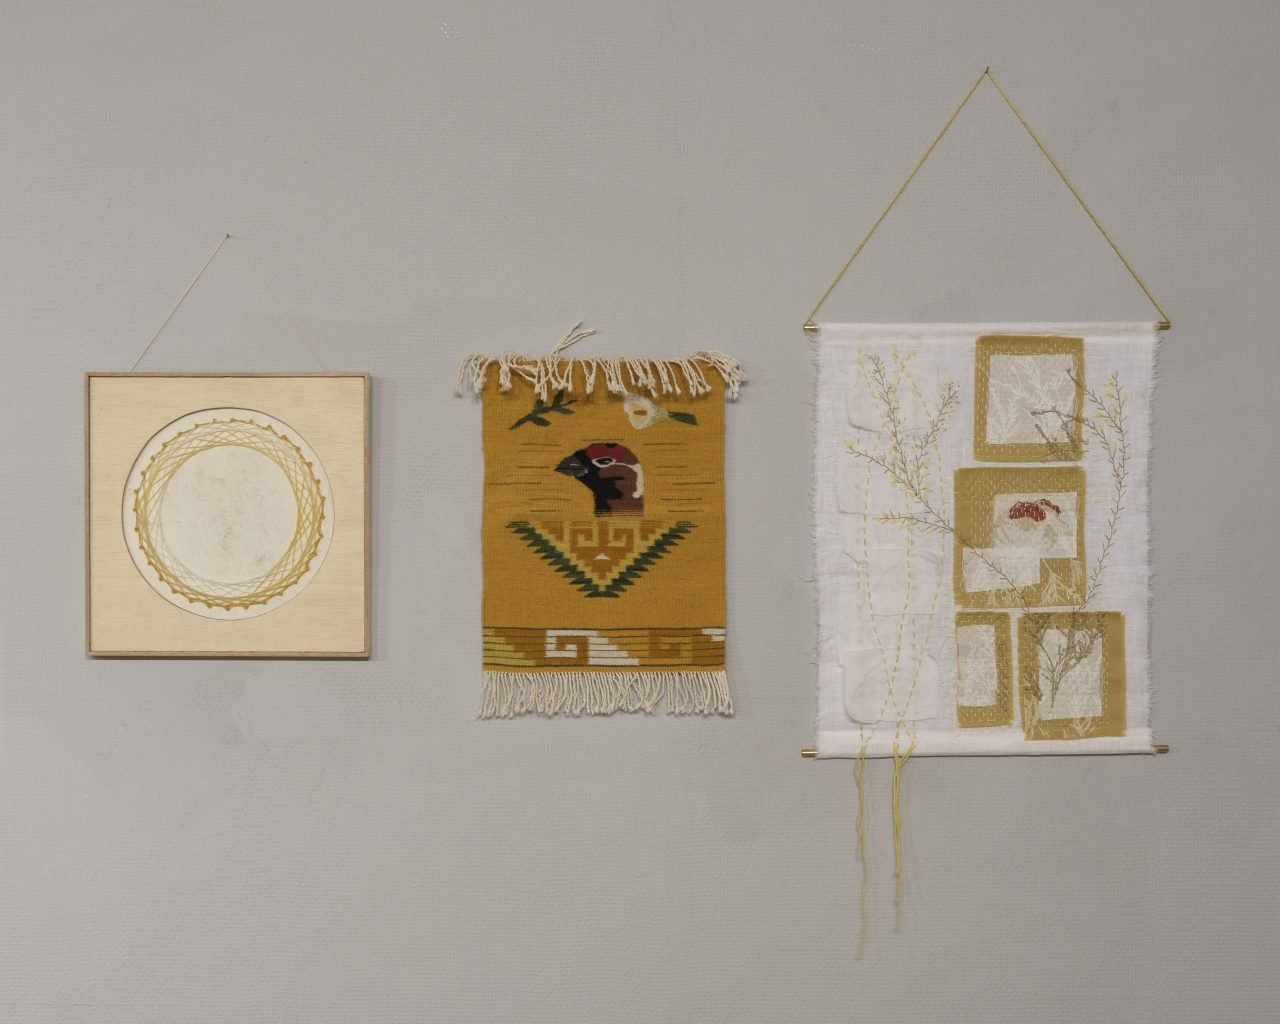 Three textile works hanging in a row on a white wall. The middle piece is woven and depicts a grouse's head on a dark yellow ground. The pieces on the left and right are stitched.